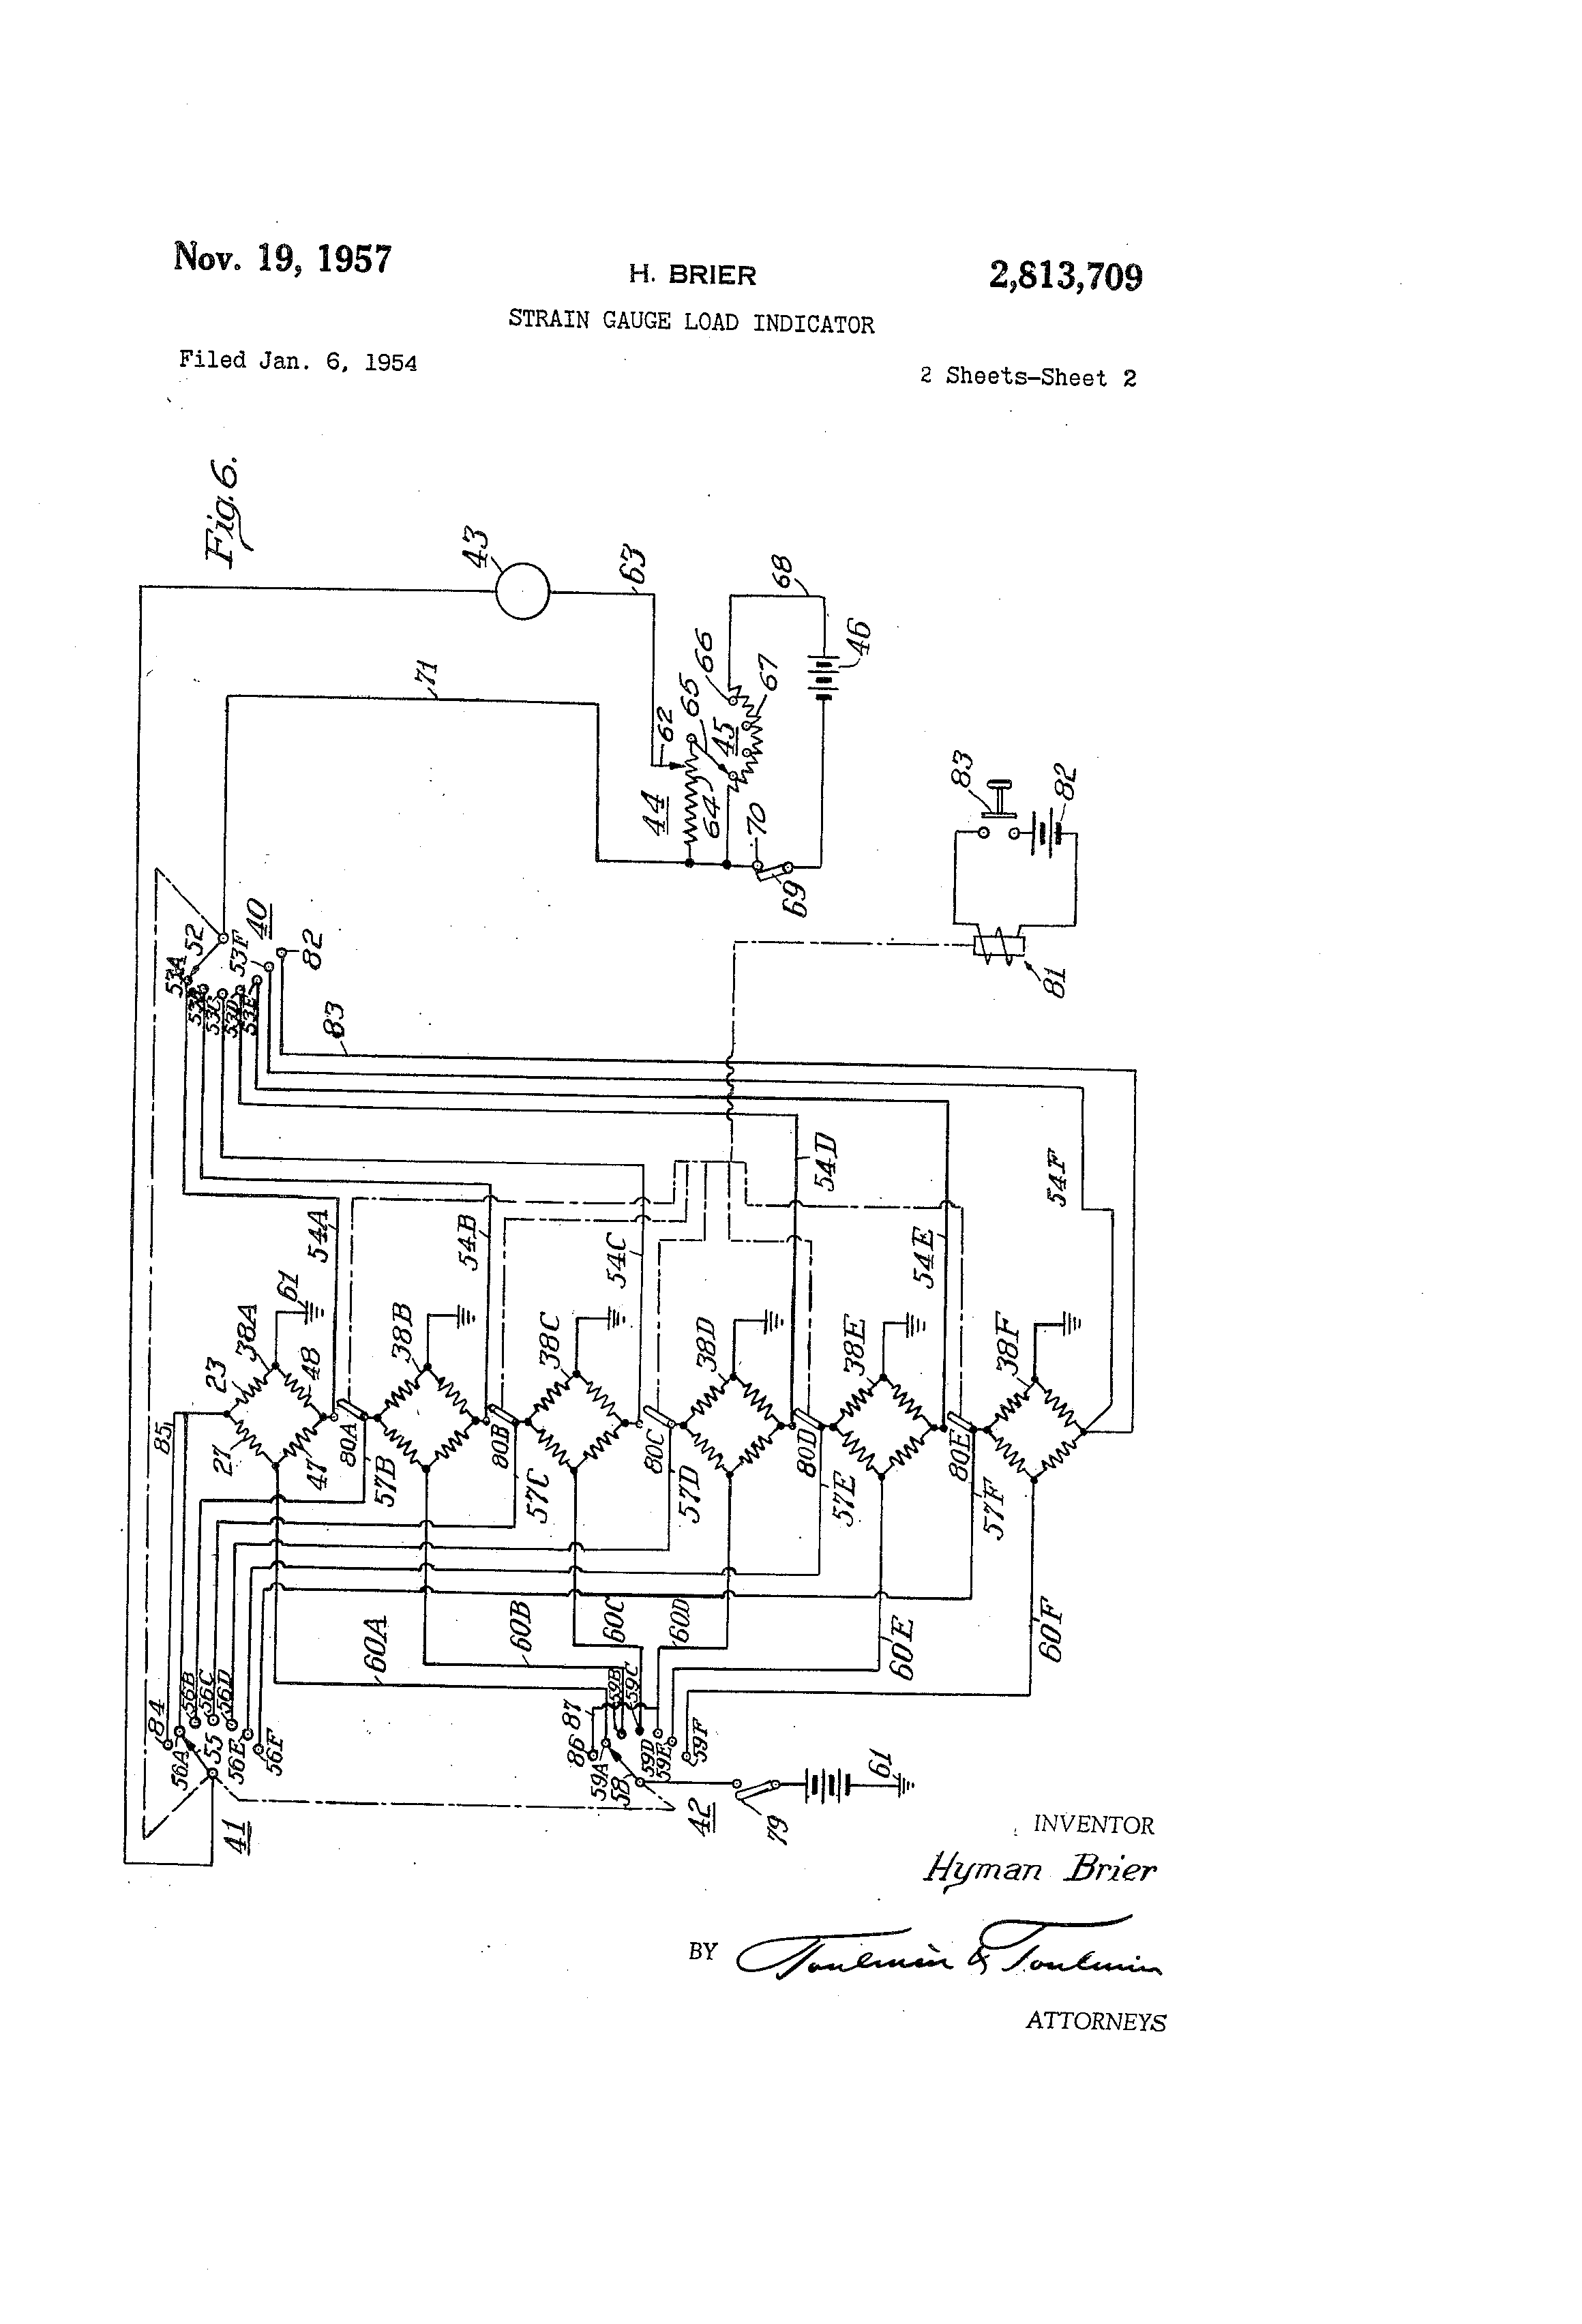 patent us2813709 - strain gauge load indicator